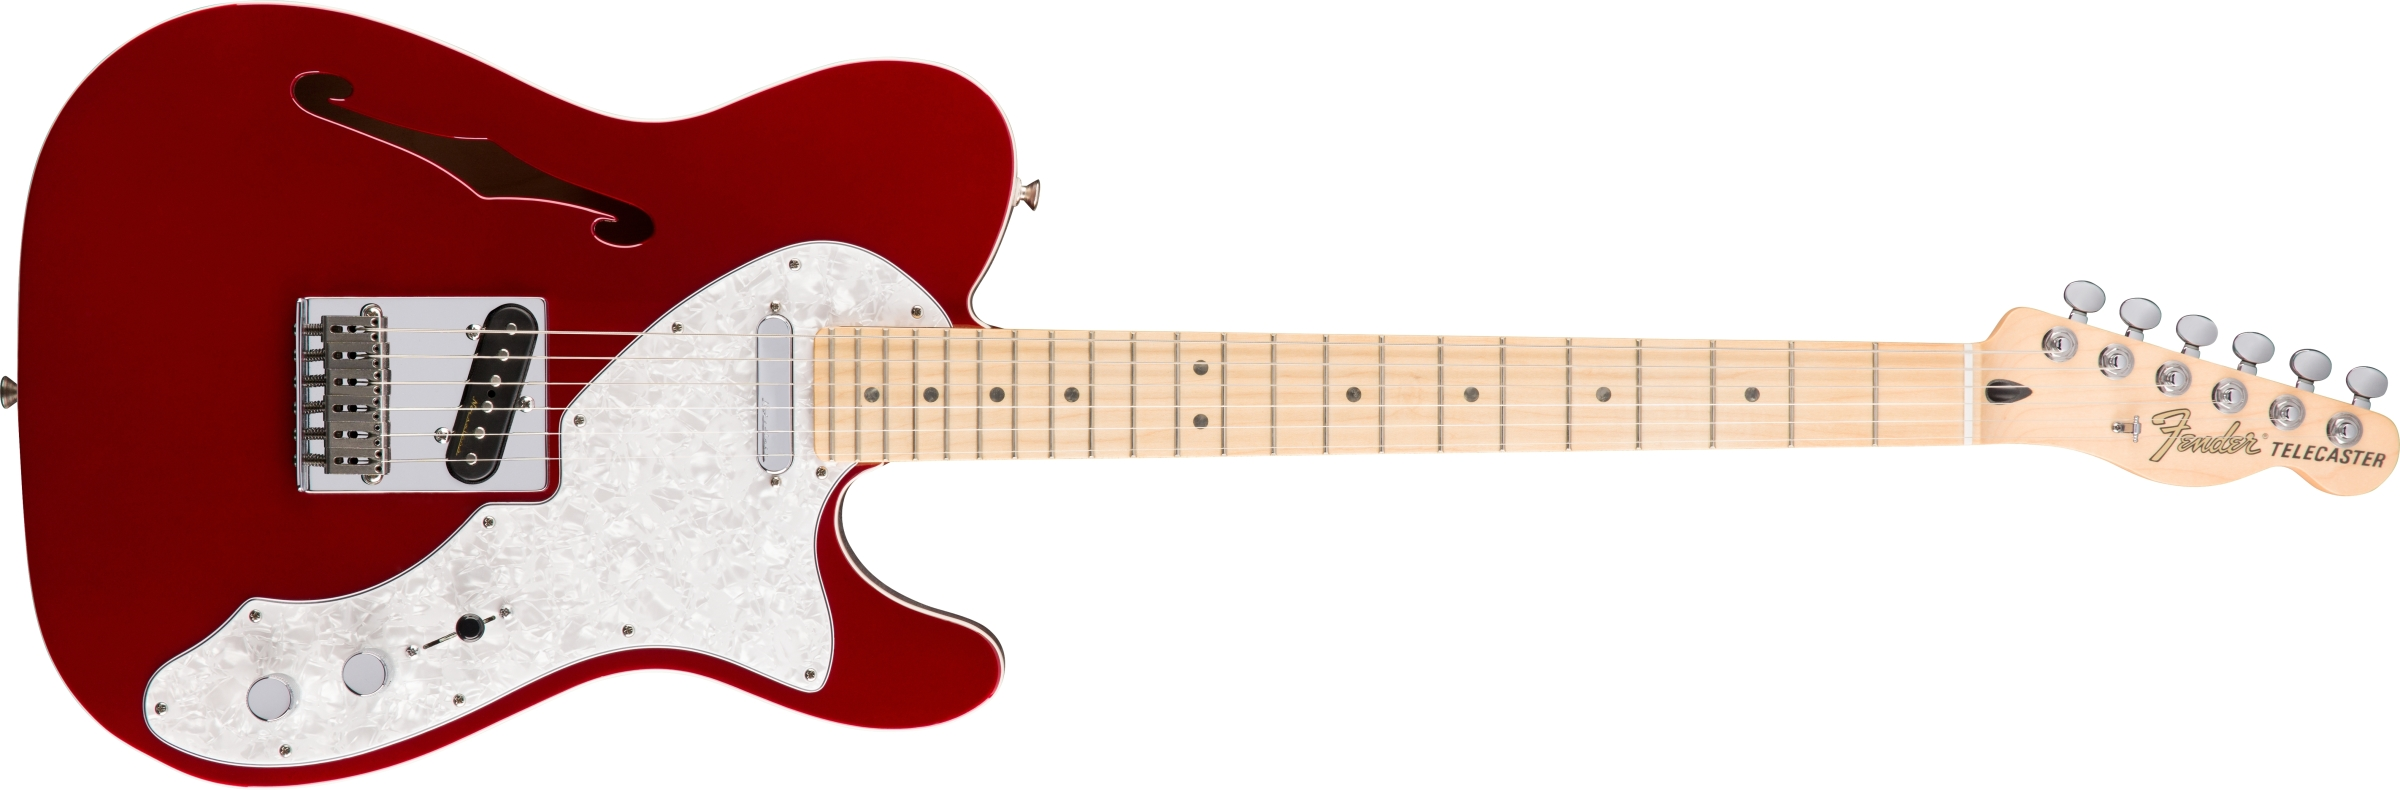 Deluxe Tele Thinline Electric Guitars Electrical Wiring In The Home Four Way Switch System Tap To Expand